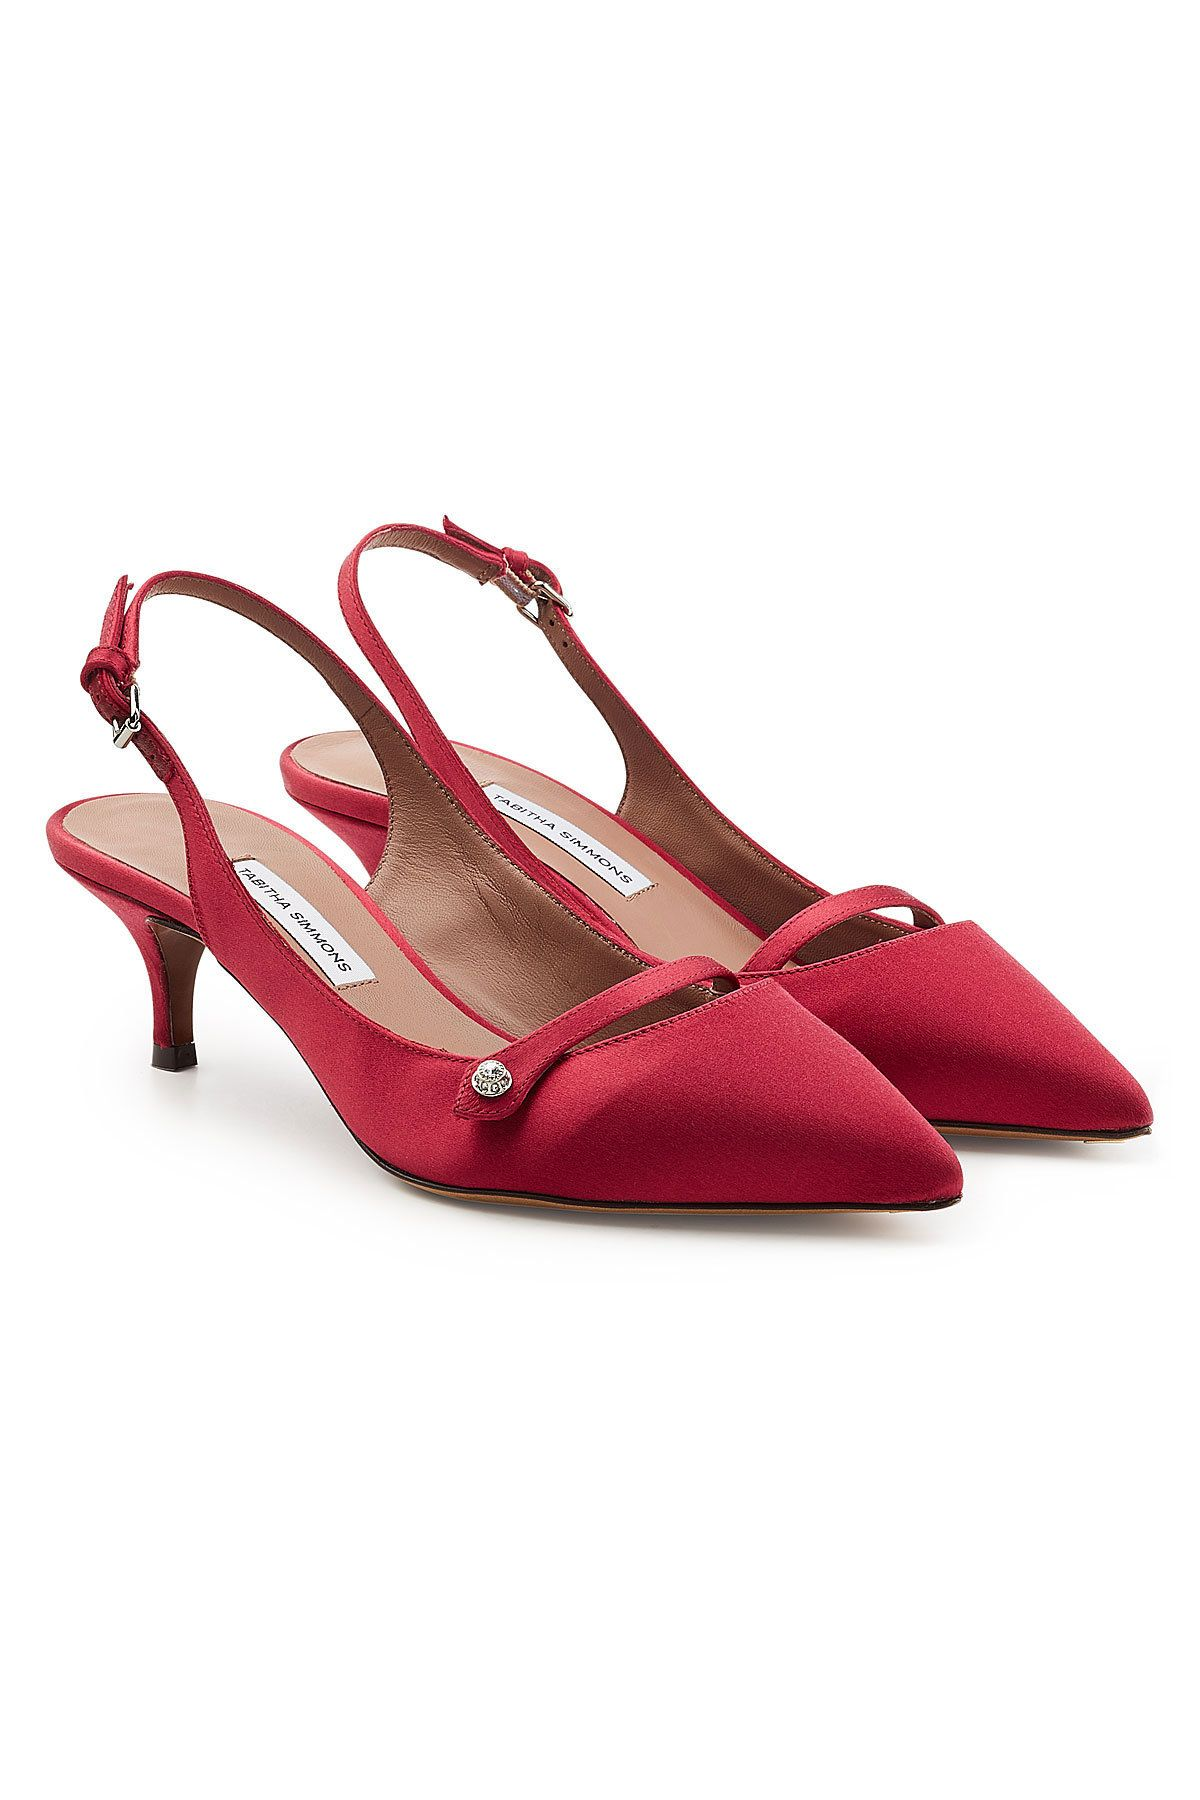 956061191aca TABITHA SIMMONS LAYTON SLING-BACK SATIN PUMPS.  tabithasimmons  shoes